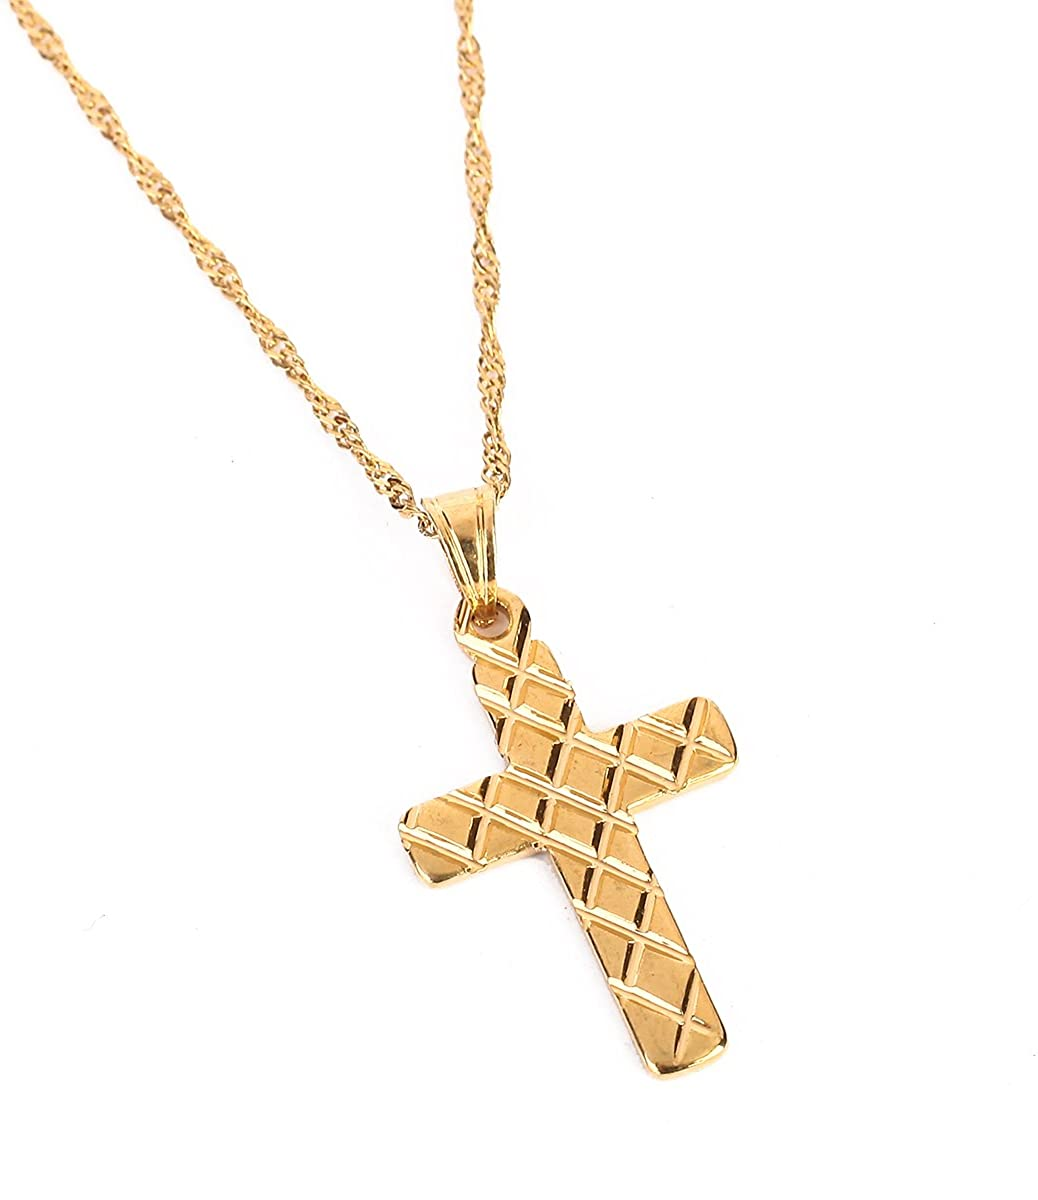 Trendy Gold Color Crucifix Cross Necklace Men Jesus Cross Chain Jewelry